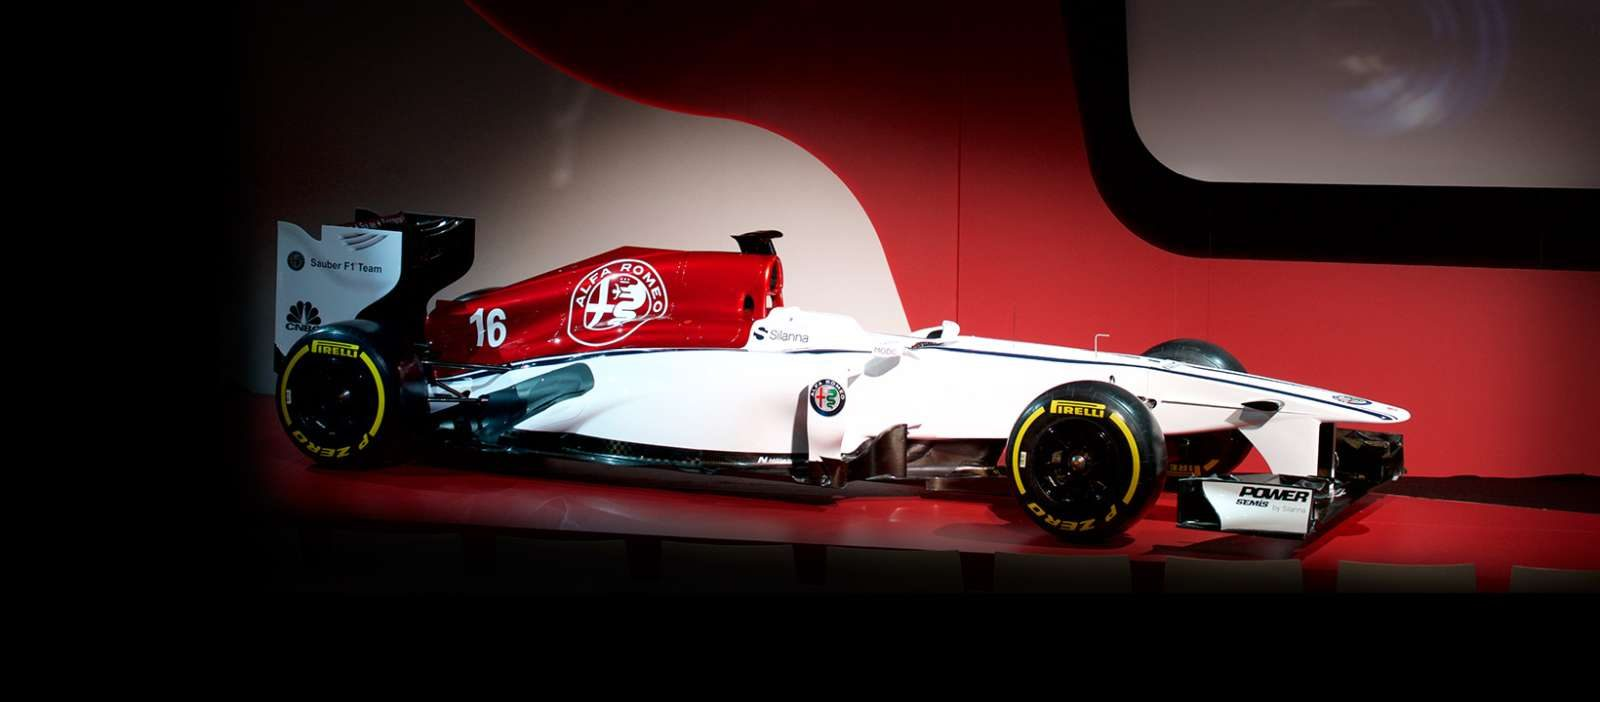 alfa romeo sauber f1 team dit wordt de kleurstelling. Black Bedroom Furniture Sets. Home Design Ideas